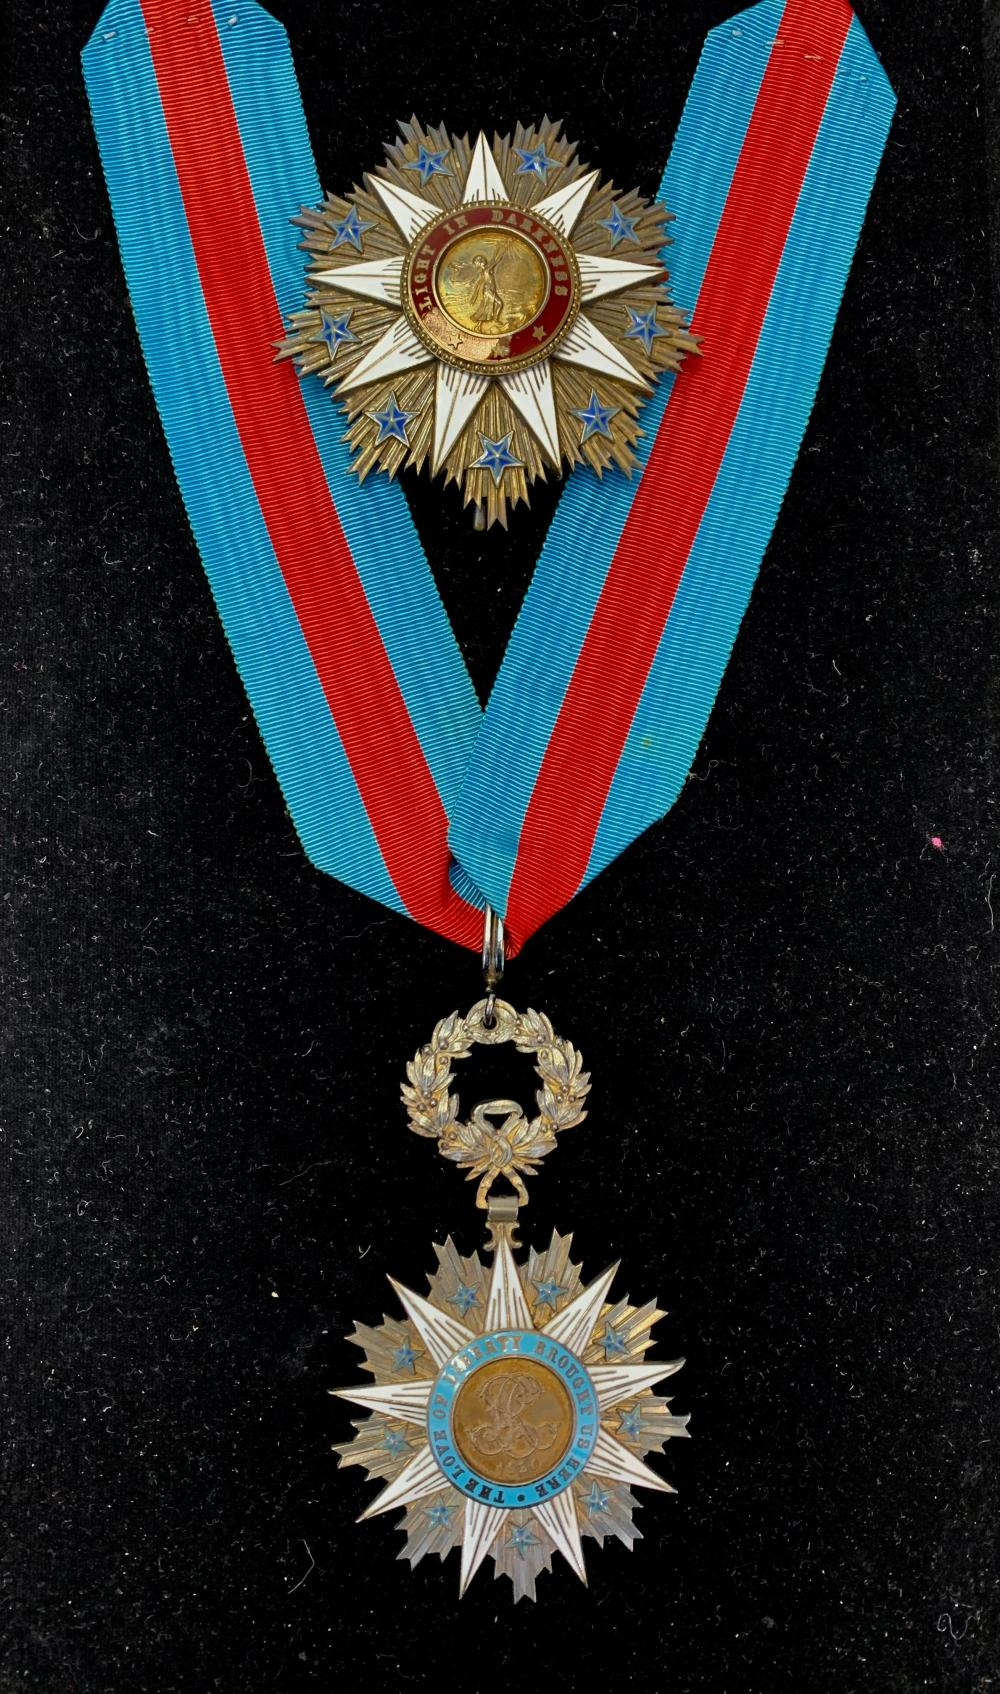 Order of the Star of Africa